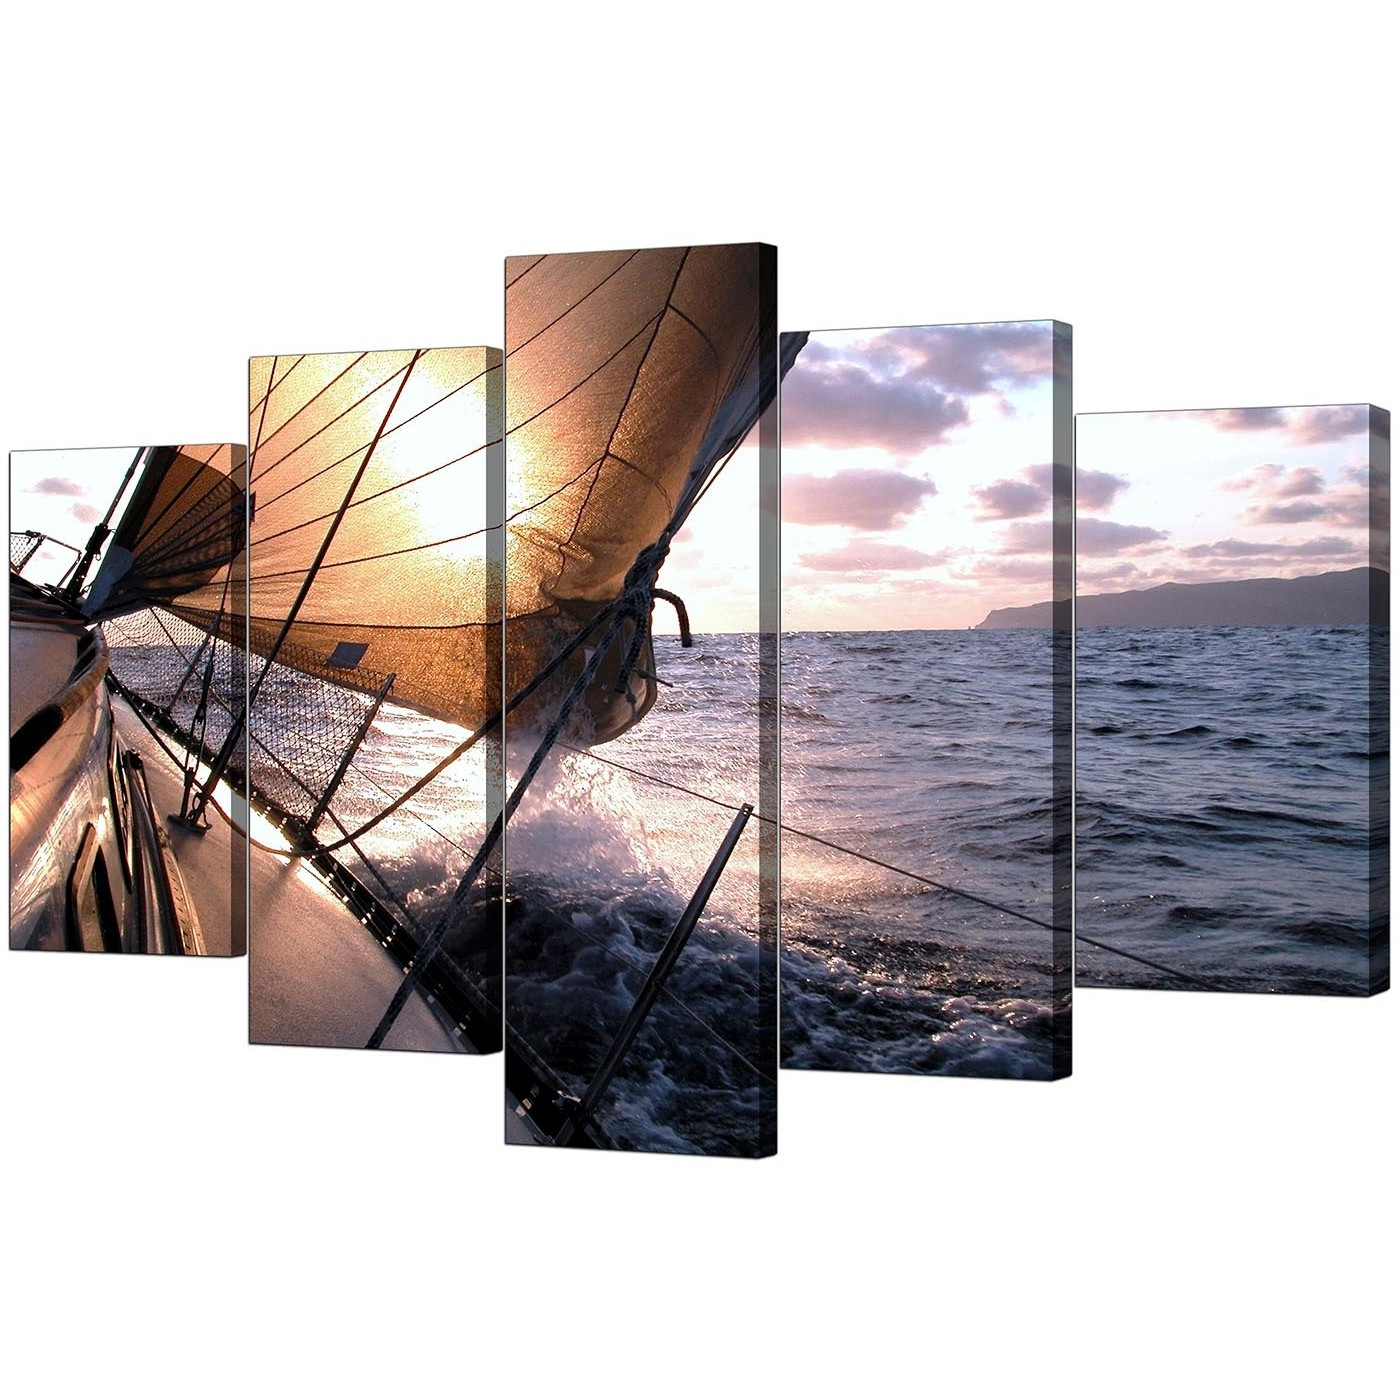 Most Recently Released Five Piece Canvas Wall Art With Regard To Boat Canvas Prints Uk For Your Living Room – 5 Piece (View 12 of 20)